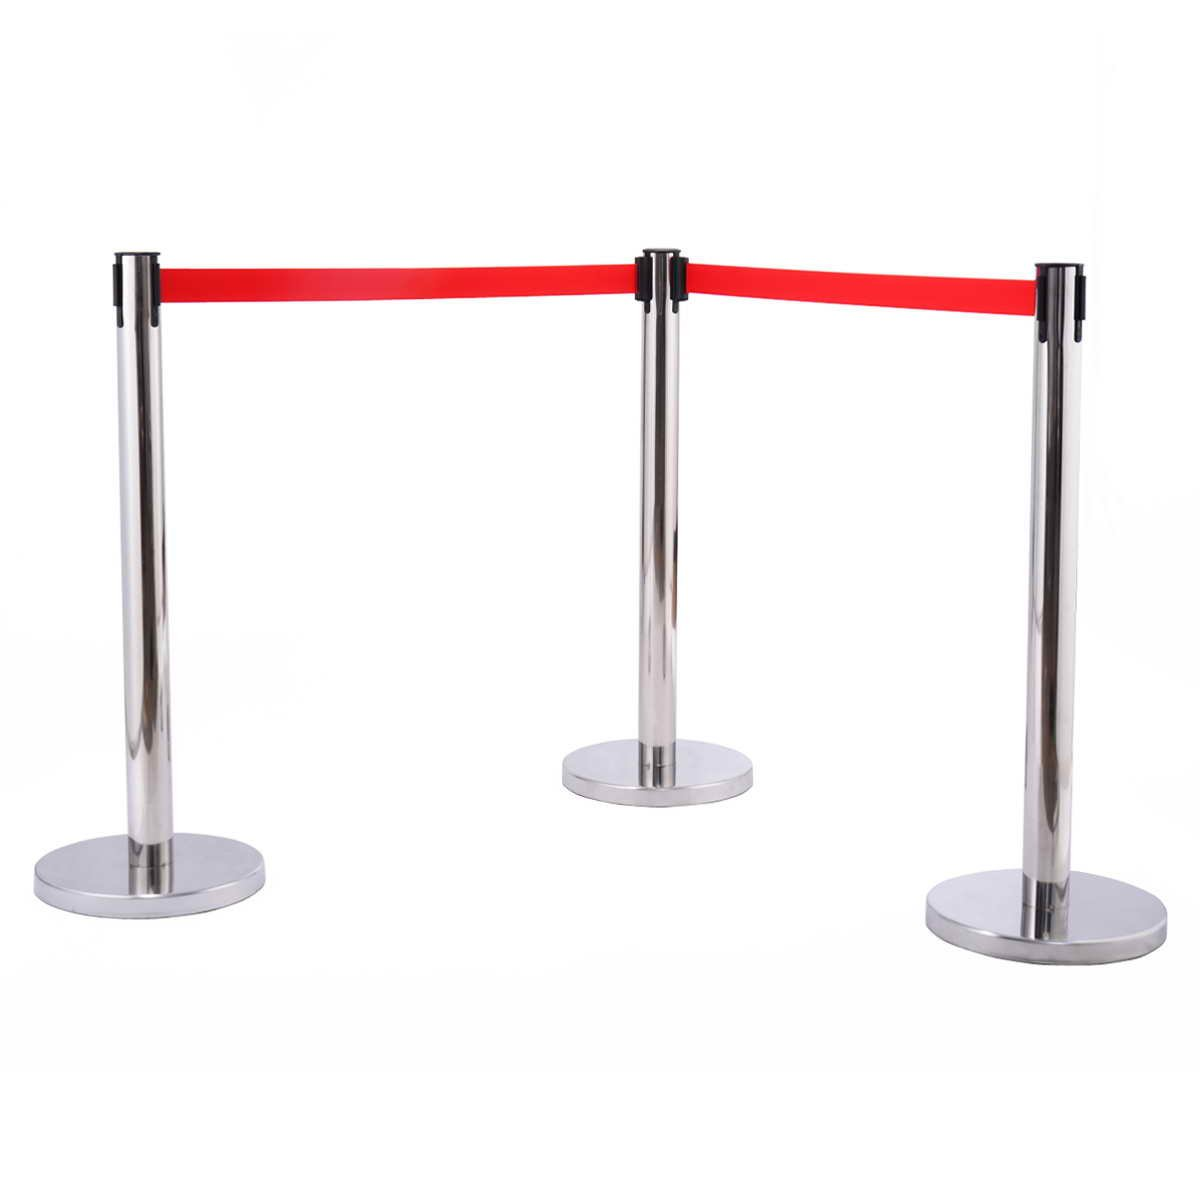 CASART 6 Retractable Belt Barrier Queue Posts Pole Crowd Control Stainless Steel New